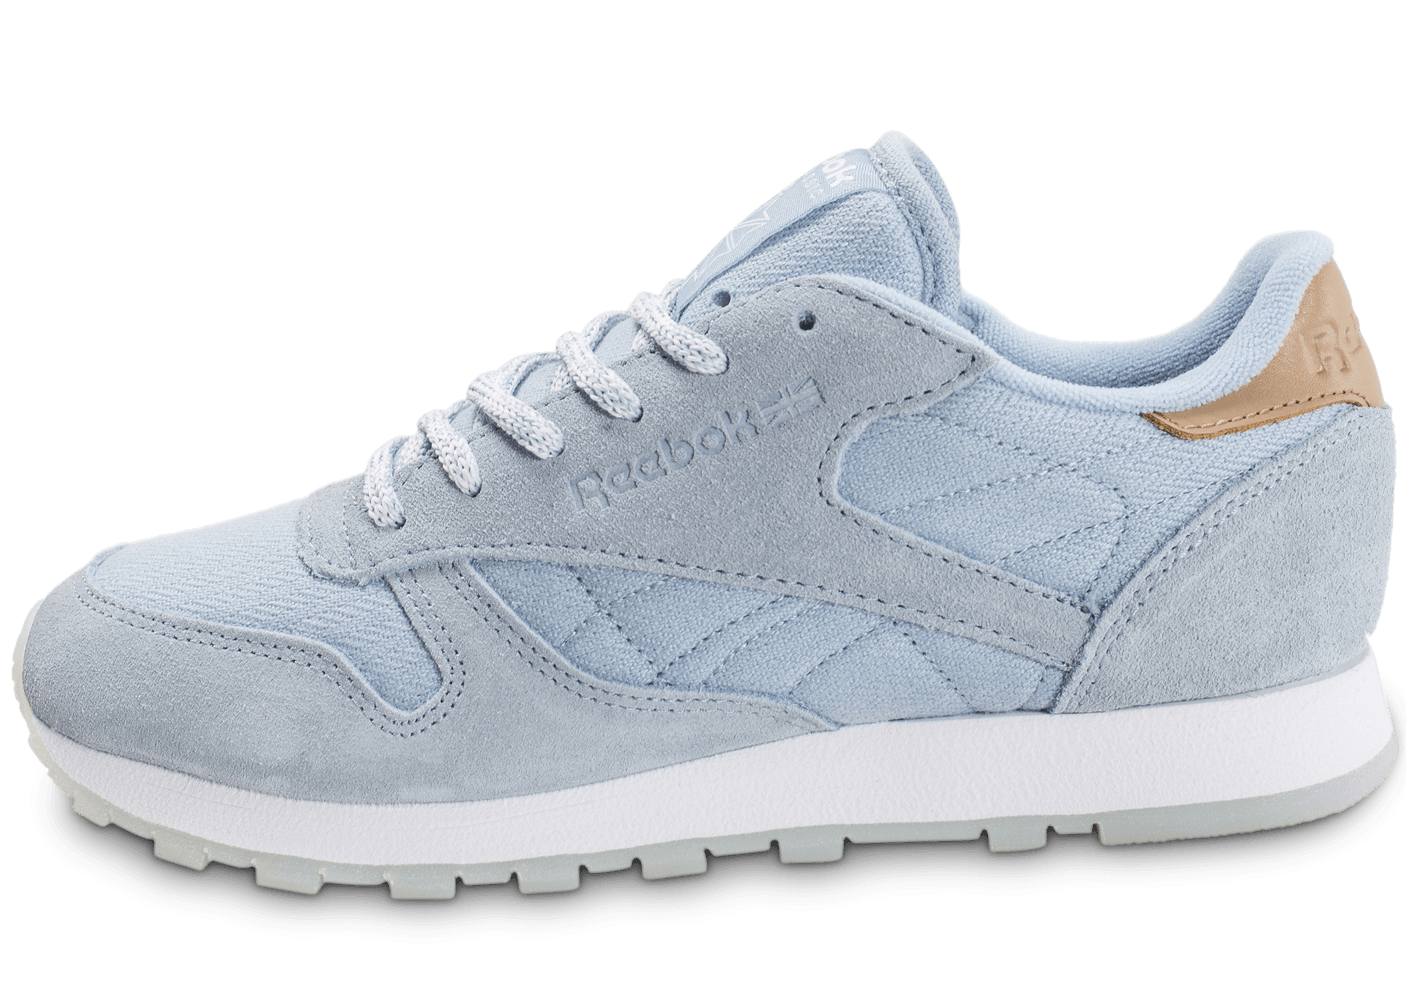 reebok classic leather sea worn bleue chaussures femme. Black Bedroom Furniture Sets. Home Design Ideas